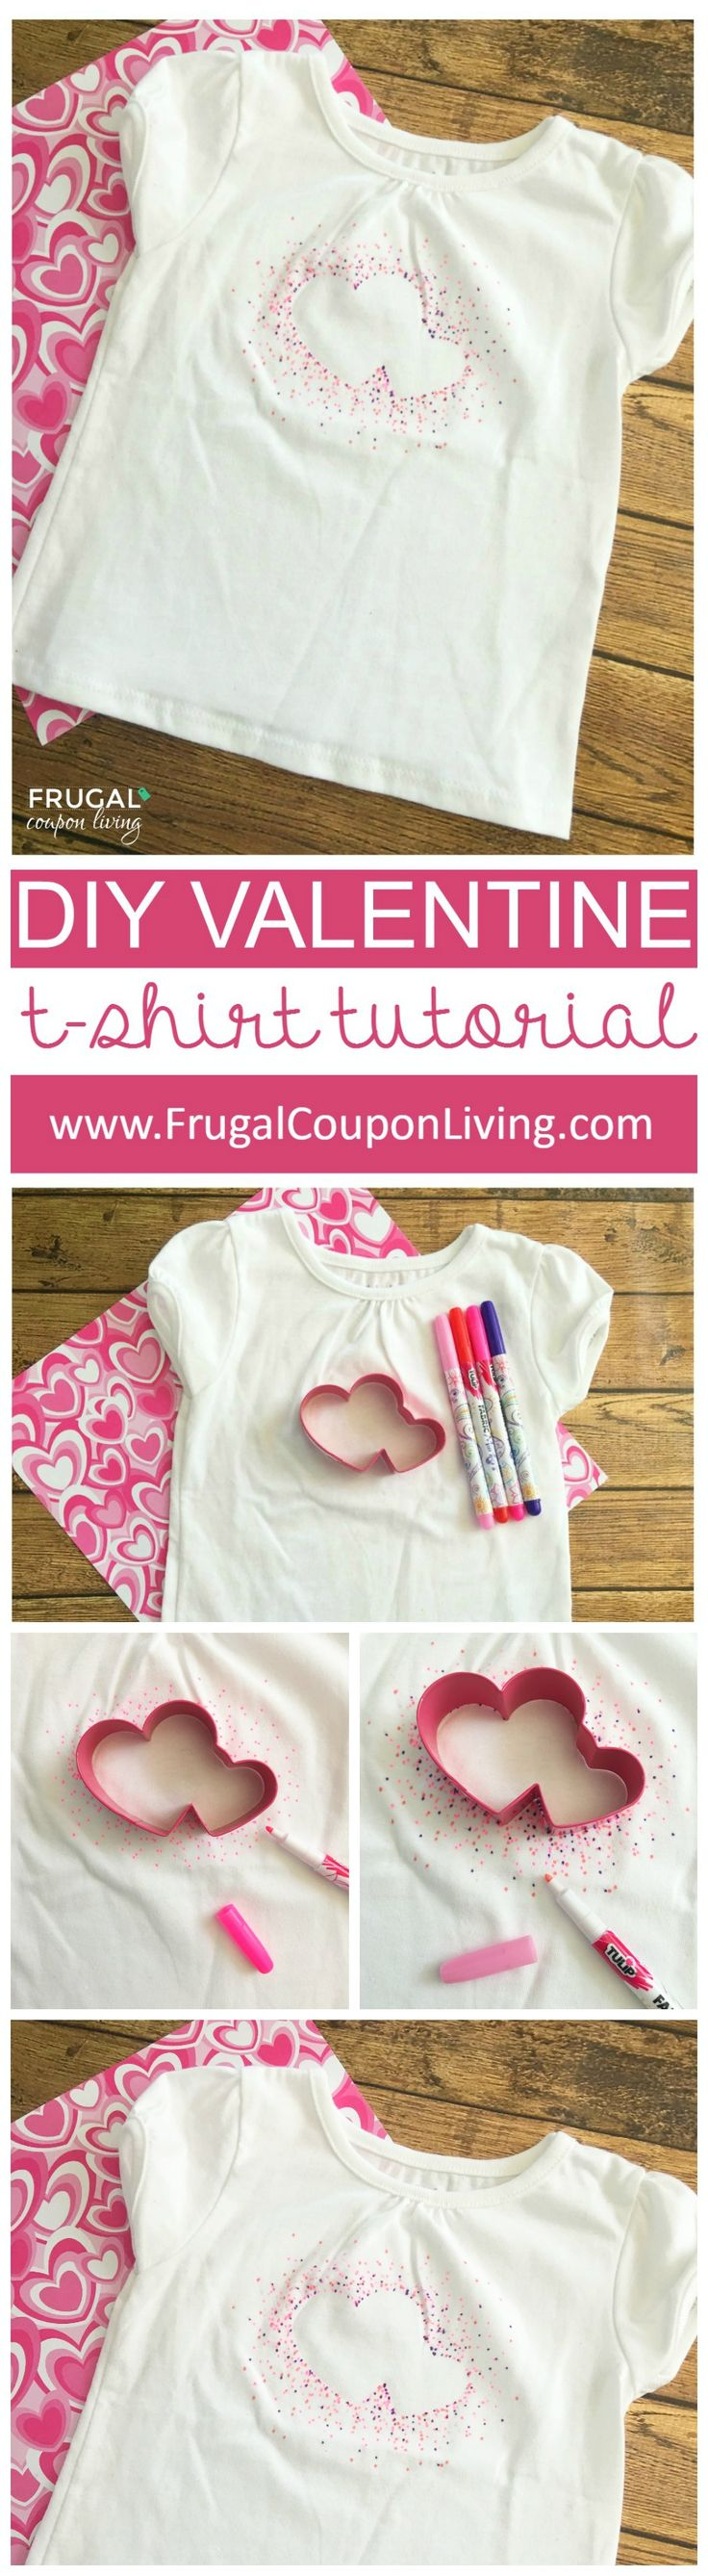 DIY Valentine Shirt Tutorial using Permanent markers. More Valentine Recipes and Crafts on Frugal Coupon Living.